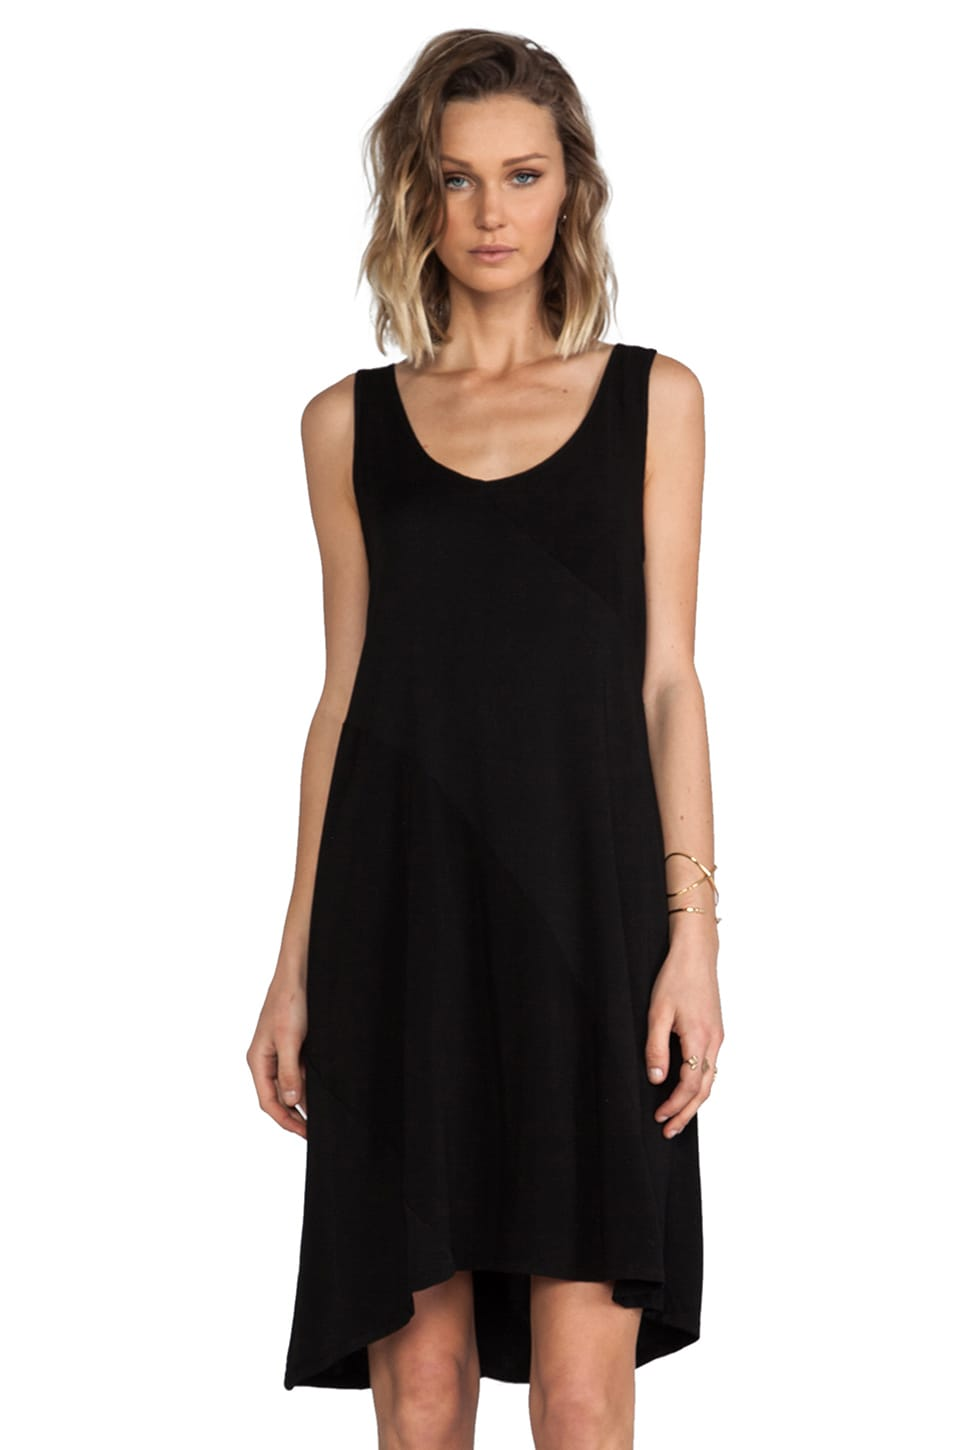 Kain Florence Dress in Black